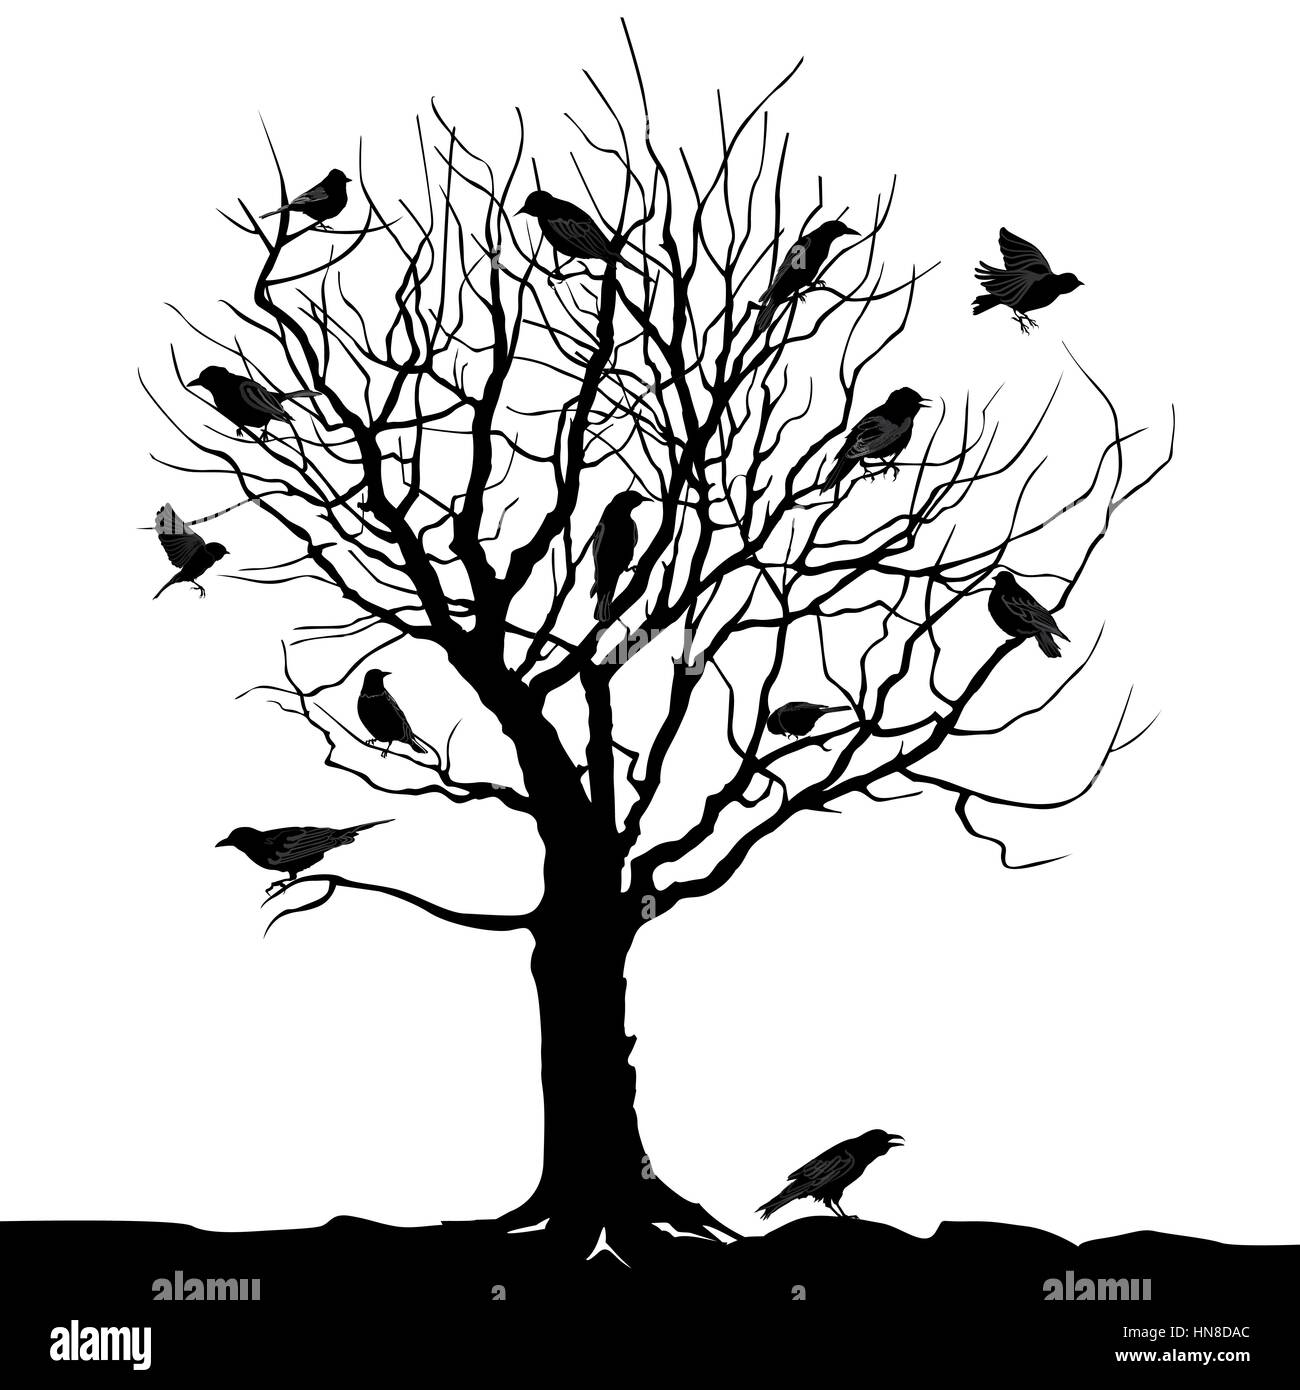 Winter tree with birds on twig vector silhouette illustration - Stock Vector